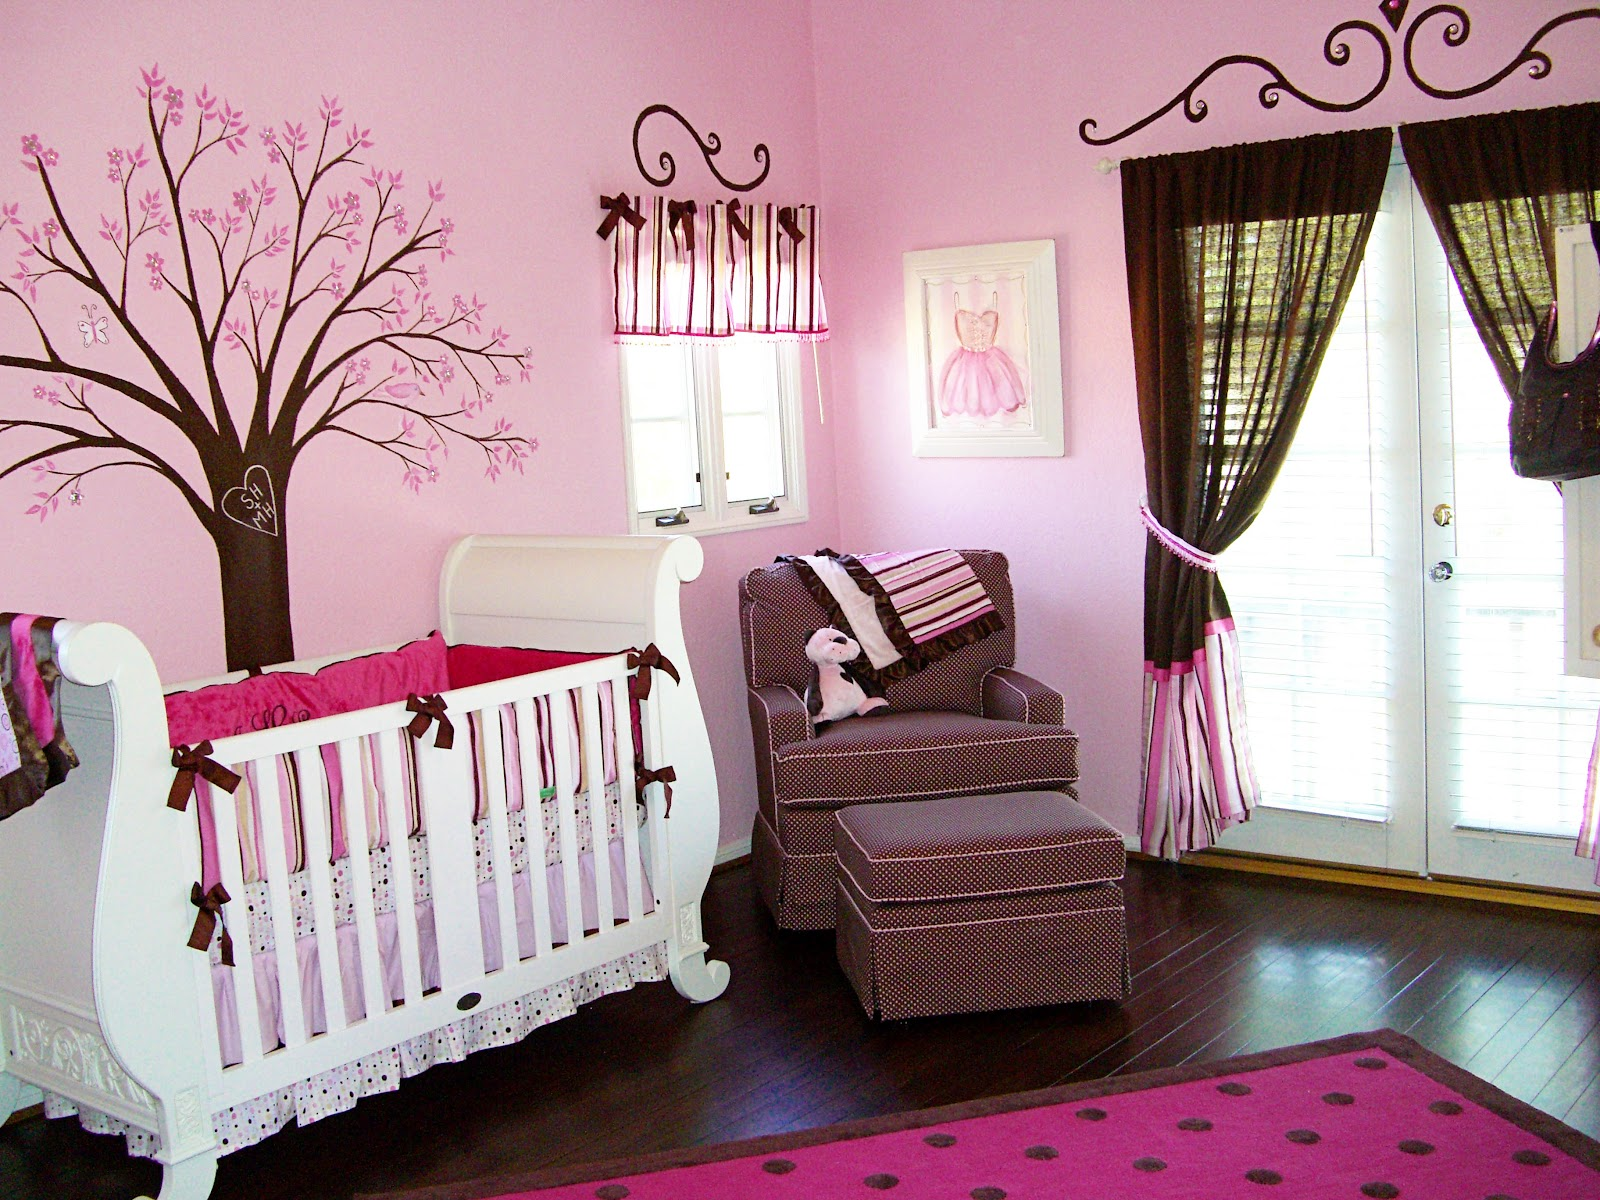 Full pink color girl baby room ideas decorate Baby room themes for girl